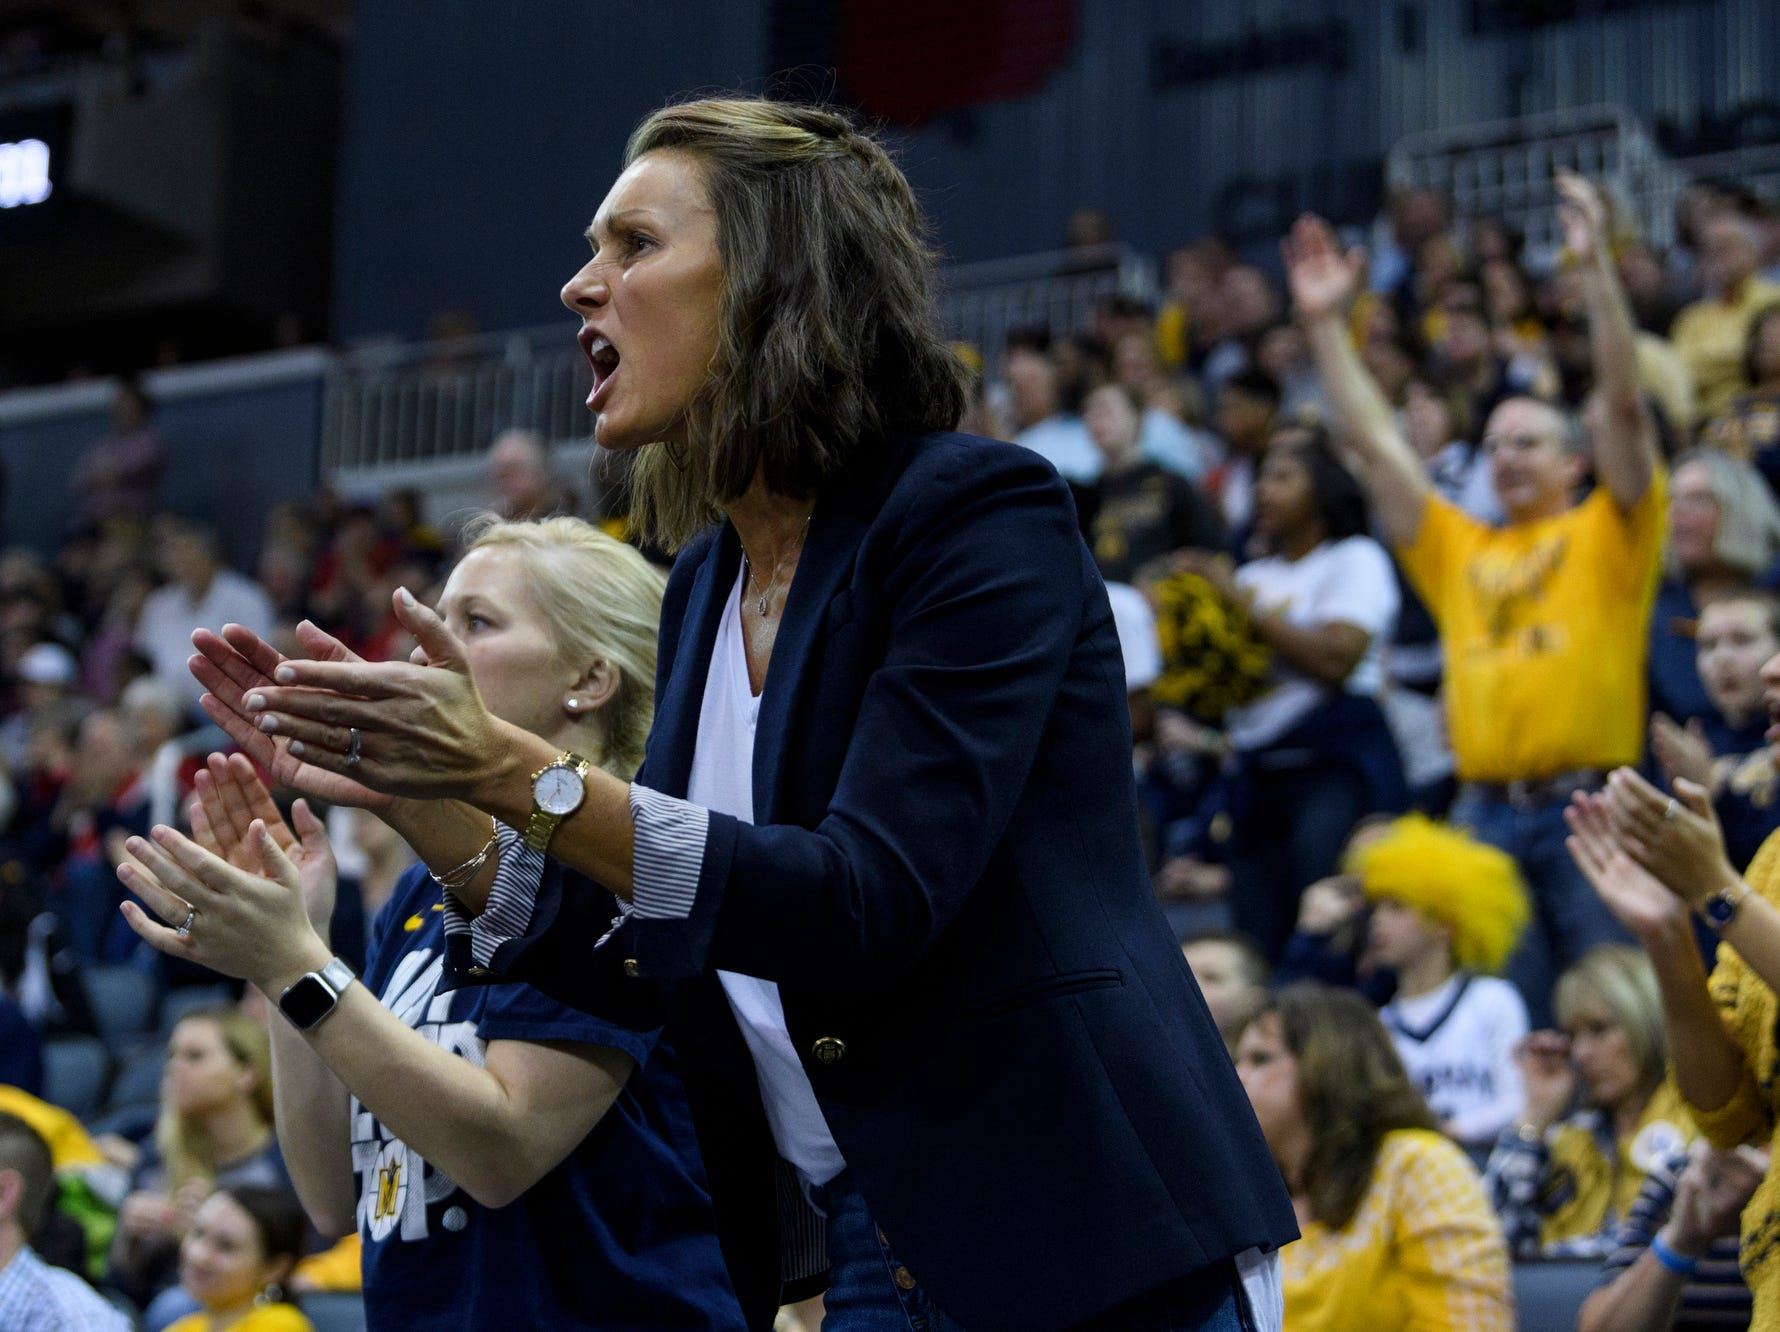 Mary McMahon, wife of Murray State Head Coach Matt McMahon, cheers for the team during the second half of the Ohio Valley Conference men's basketball championship against the Belmont University Bruins at Ford Center in Evansville, Ind., Saturday, March 9, 2019. The Racers earned the OVC men's championship title after defeating the Bruins, 77-65.